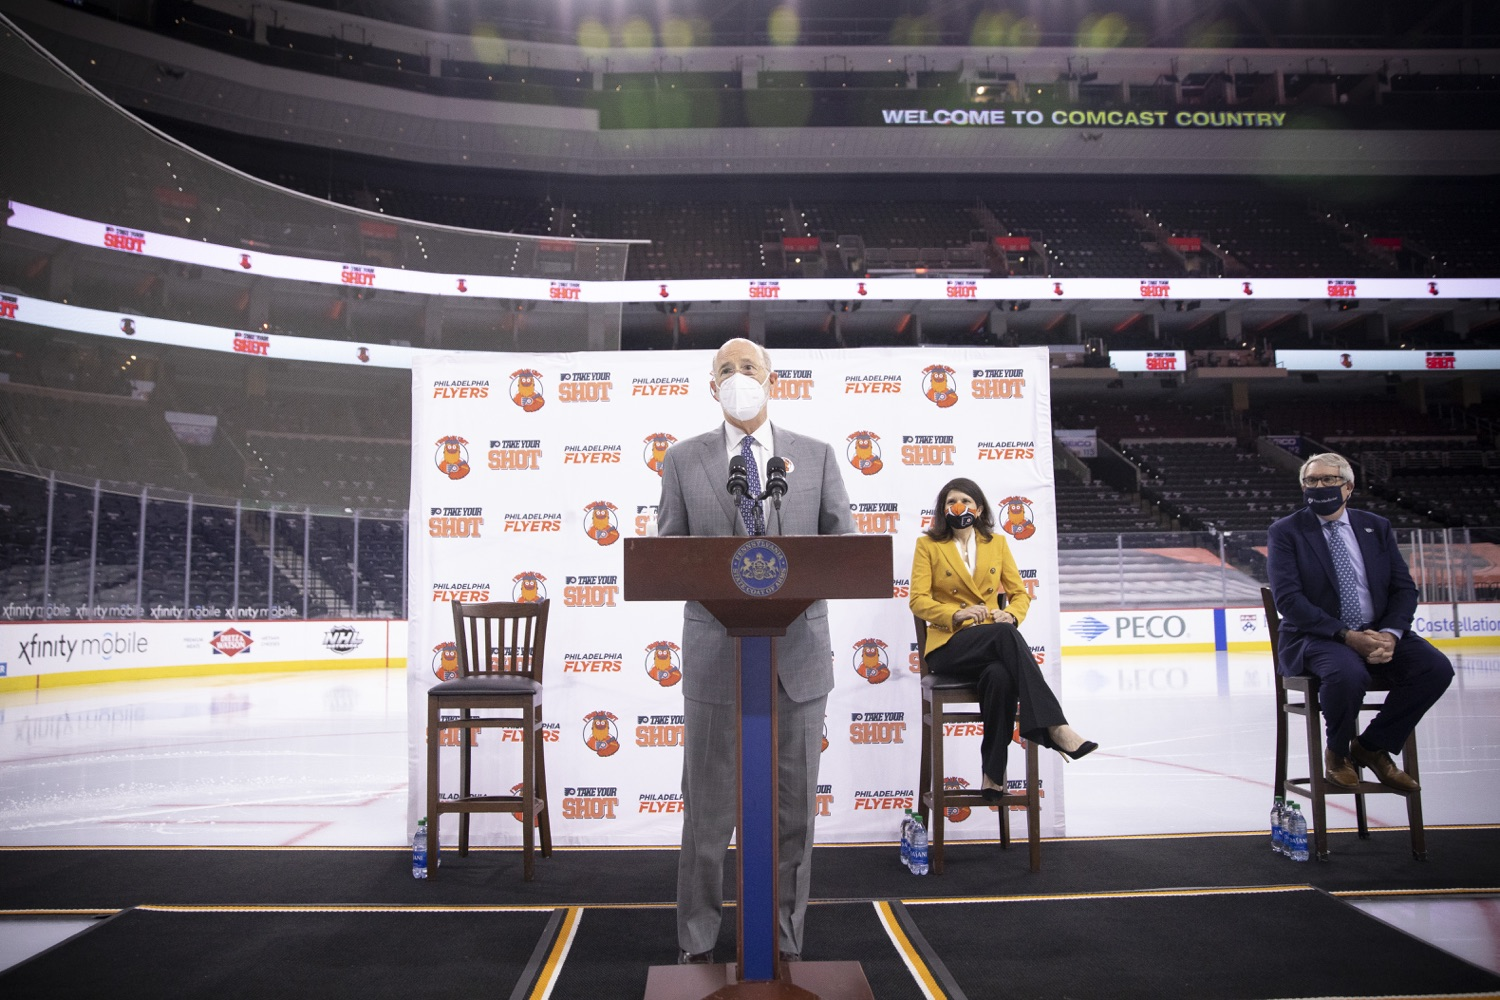 "<a href=""https://filesource.wostreaming.net/commonwealthofpa/photo/18727_gov_vaccines_dz_022.jpg"" target=""_blank"">⇣ Download Photo<br></a>Pennsylvania Governor Tom Wolf speaking with the press.   Governor Tom Wolf today visited the Philadelphia Flyers organization at the Wells Fargo Center in Philadelphia to discuss COVID-19 vaccine efforts in Pennsylvania. The Flyers recently launched a comprehensive COVID-19 vaccine campaign, Take Your Shot, encouraging Pennsylvanians to get vaccinated.  Philadelphia, PA  MAY 3, 2021"